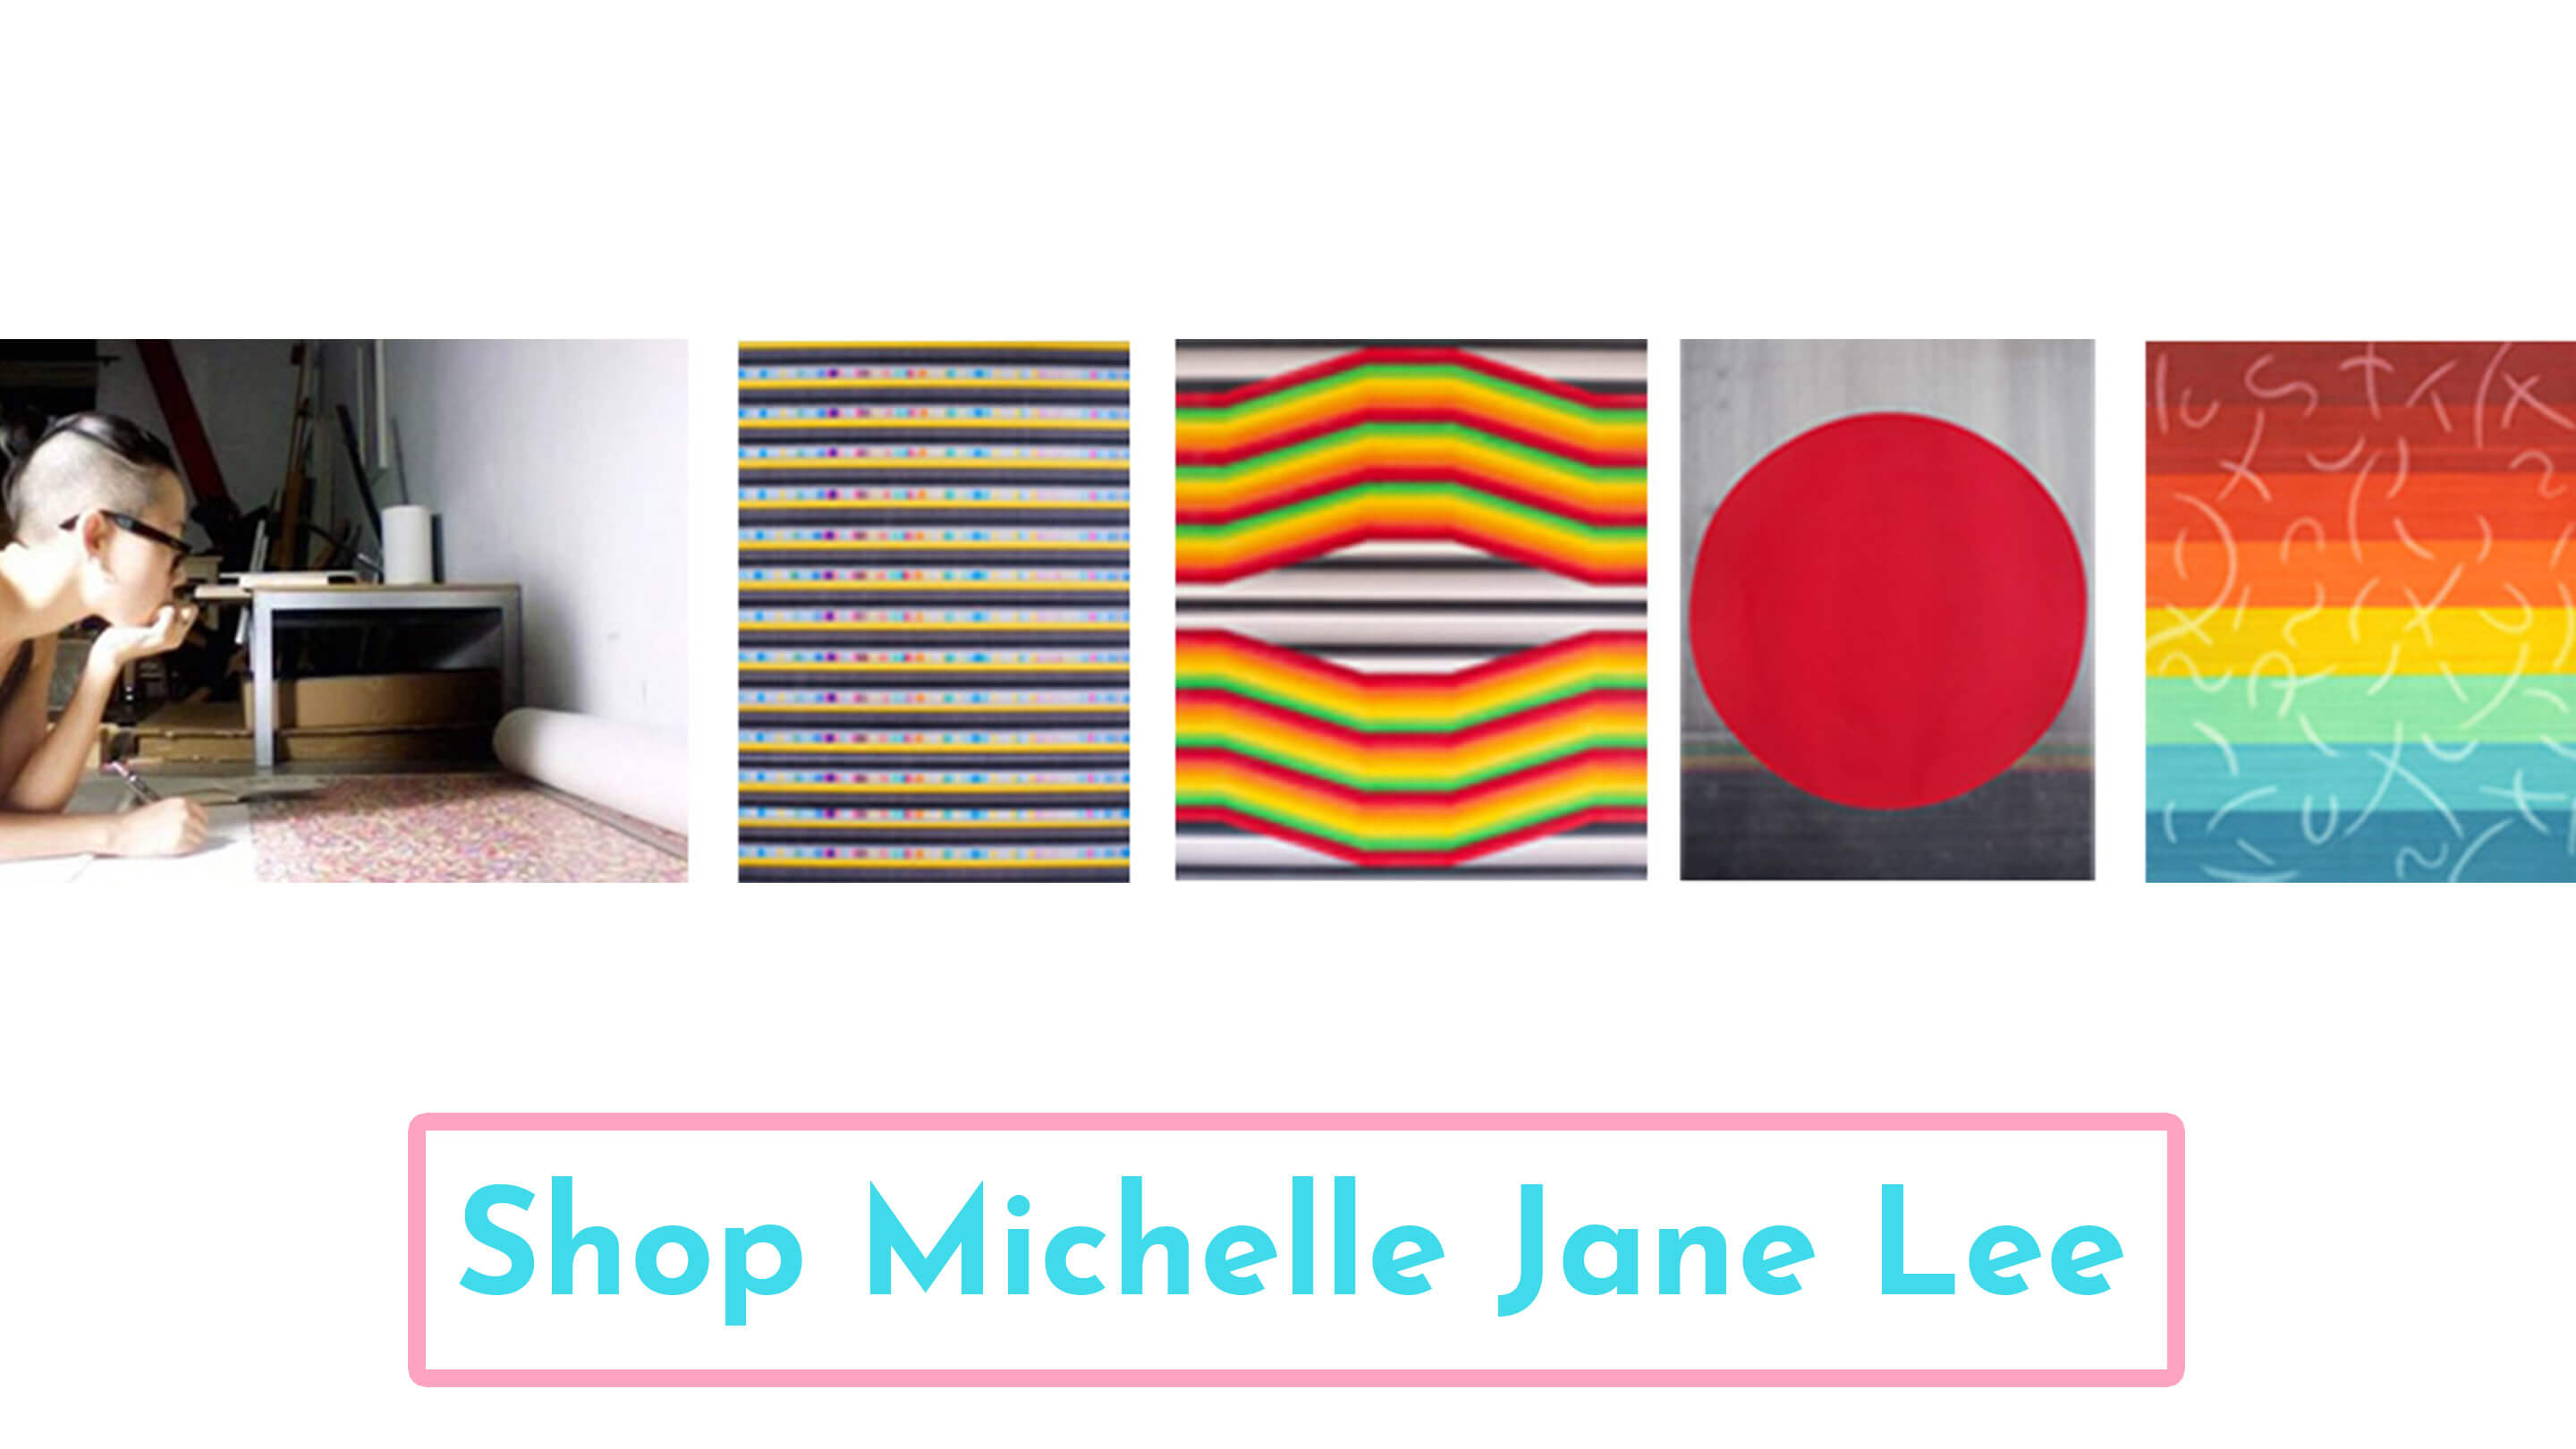 Shop Michelle Jane Lee